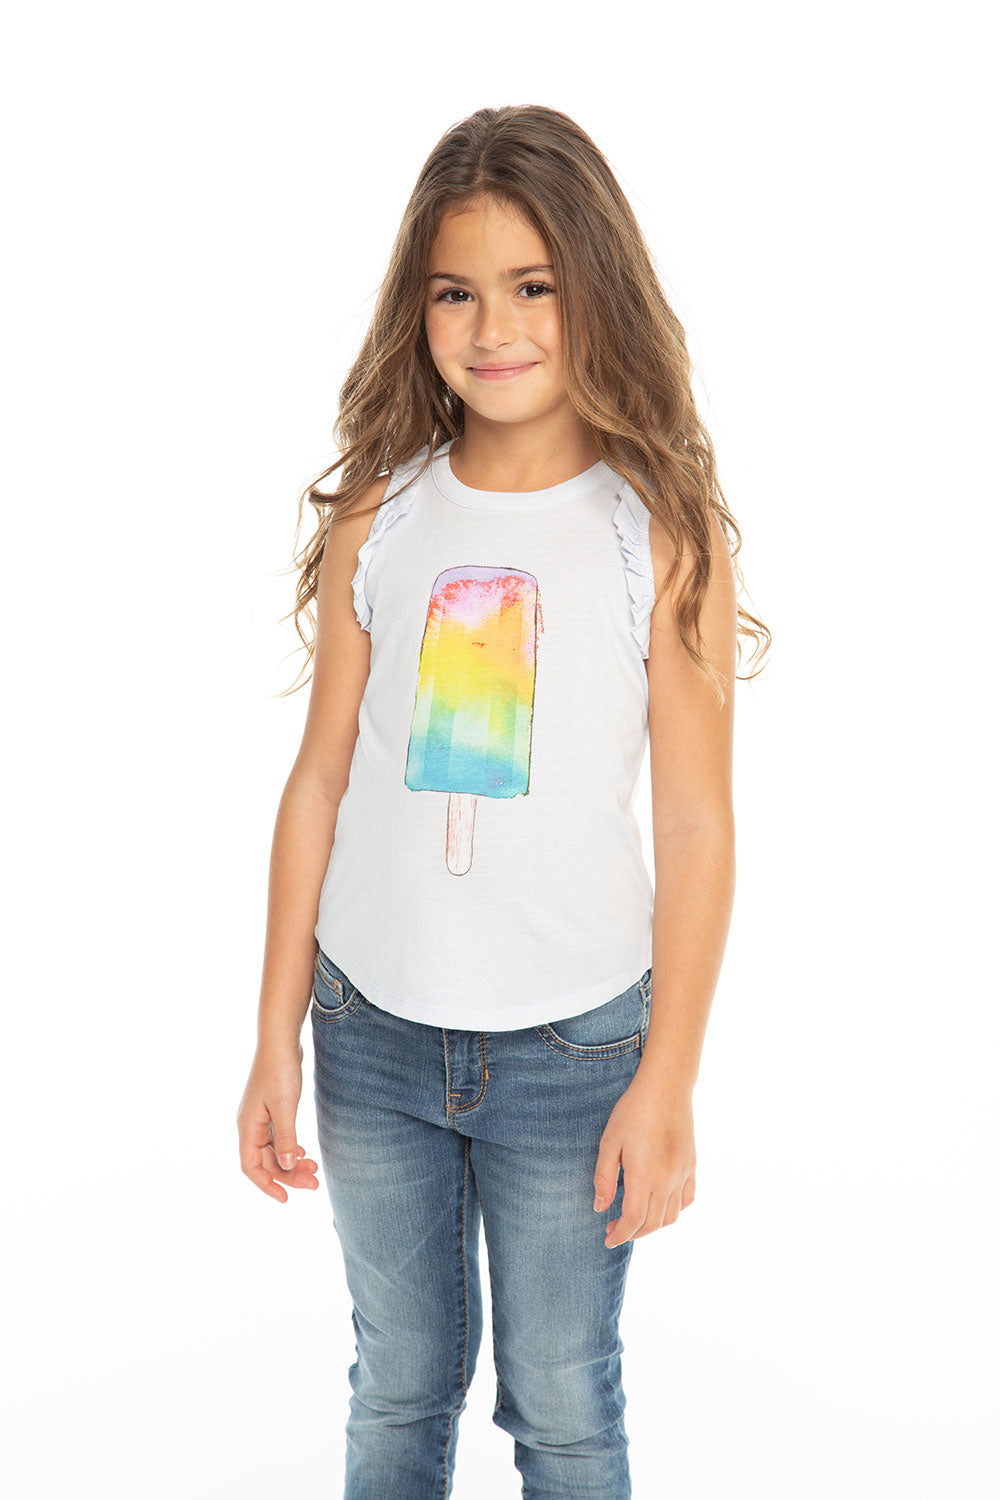 Rainbow Popsicle, Girls, chaserbrand.com,chaser clothing,chaser apparel,chaser los angeles